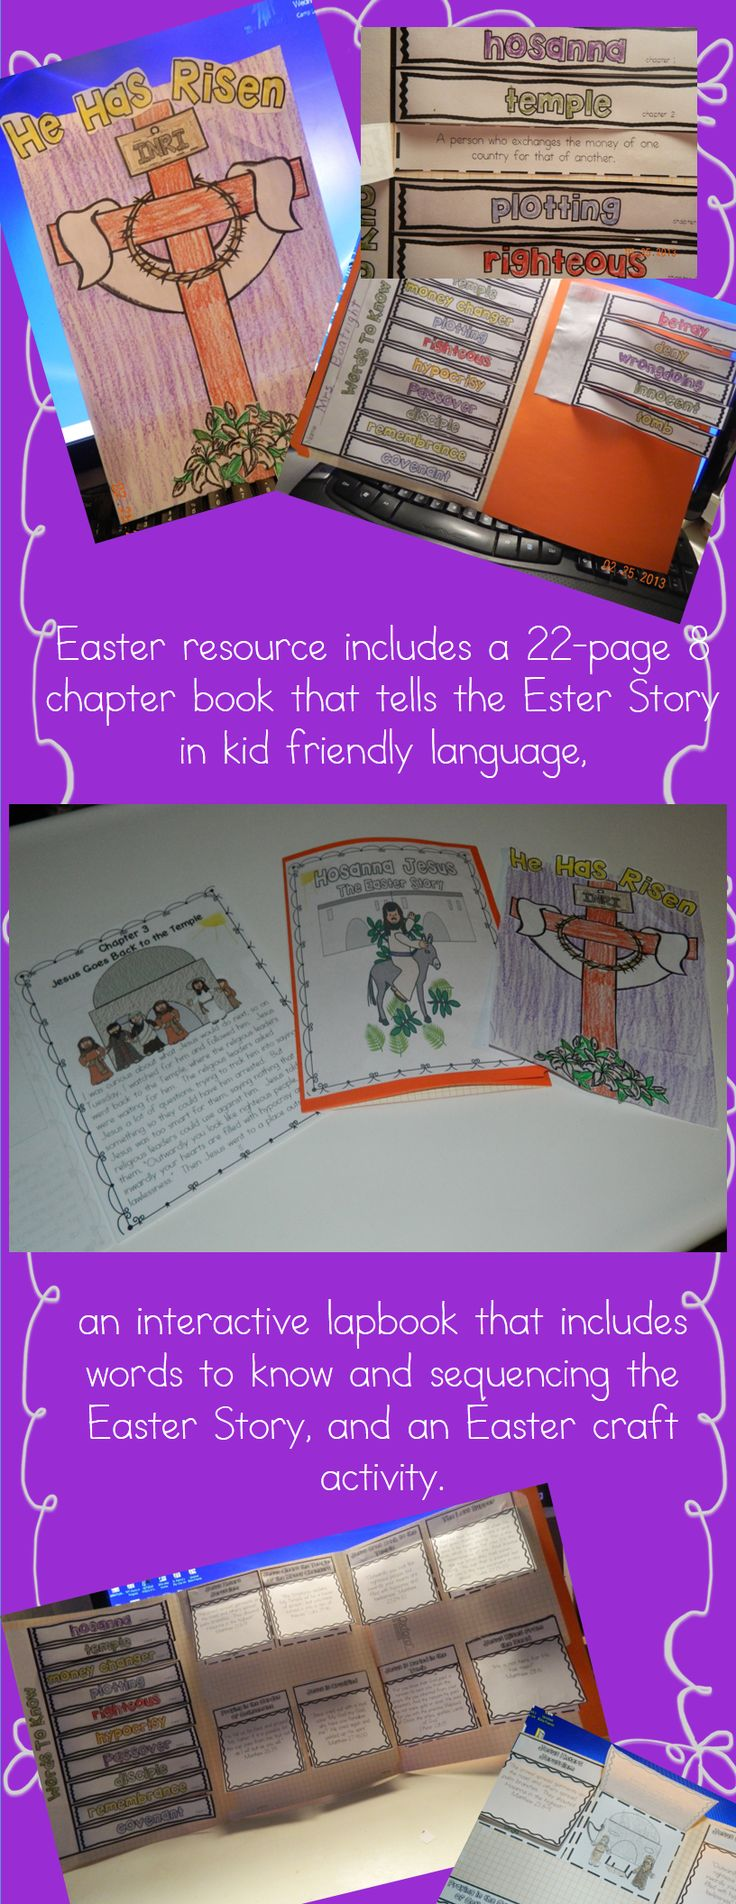 A great Christian teaching resource that tells the Easter Story in a kid friendly 22 page 9 chapter book, perfect for Holy Week!  Print it out or read it straight from your SMARTBoard. The follow-up activities include an interactive lapbook and a craft activity.